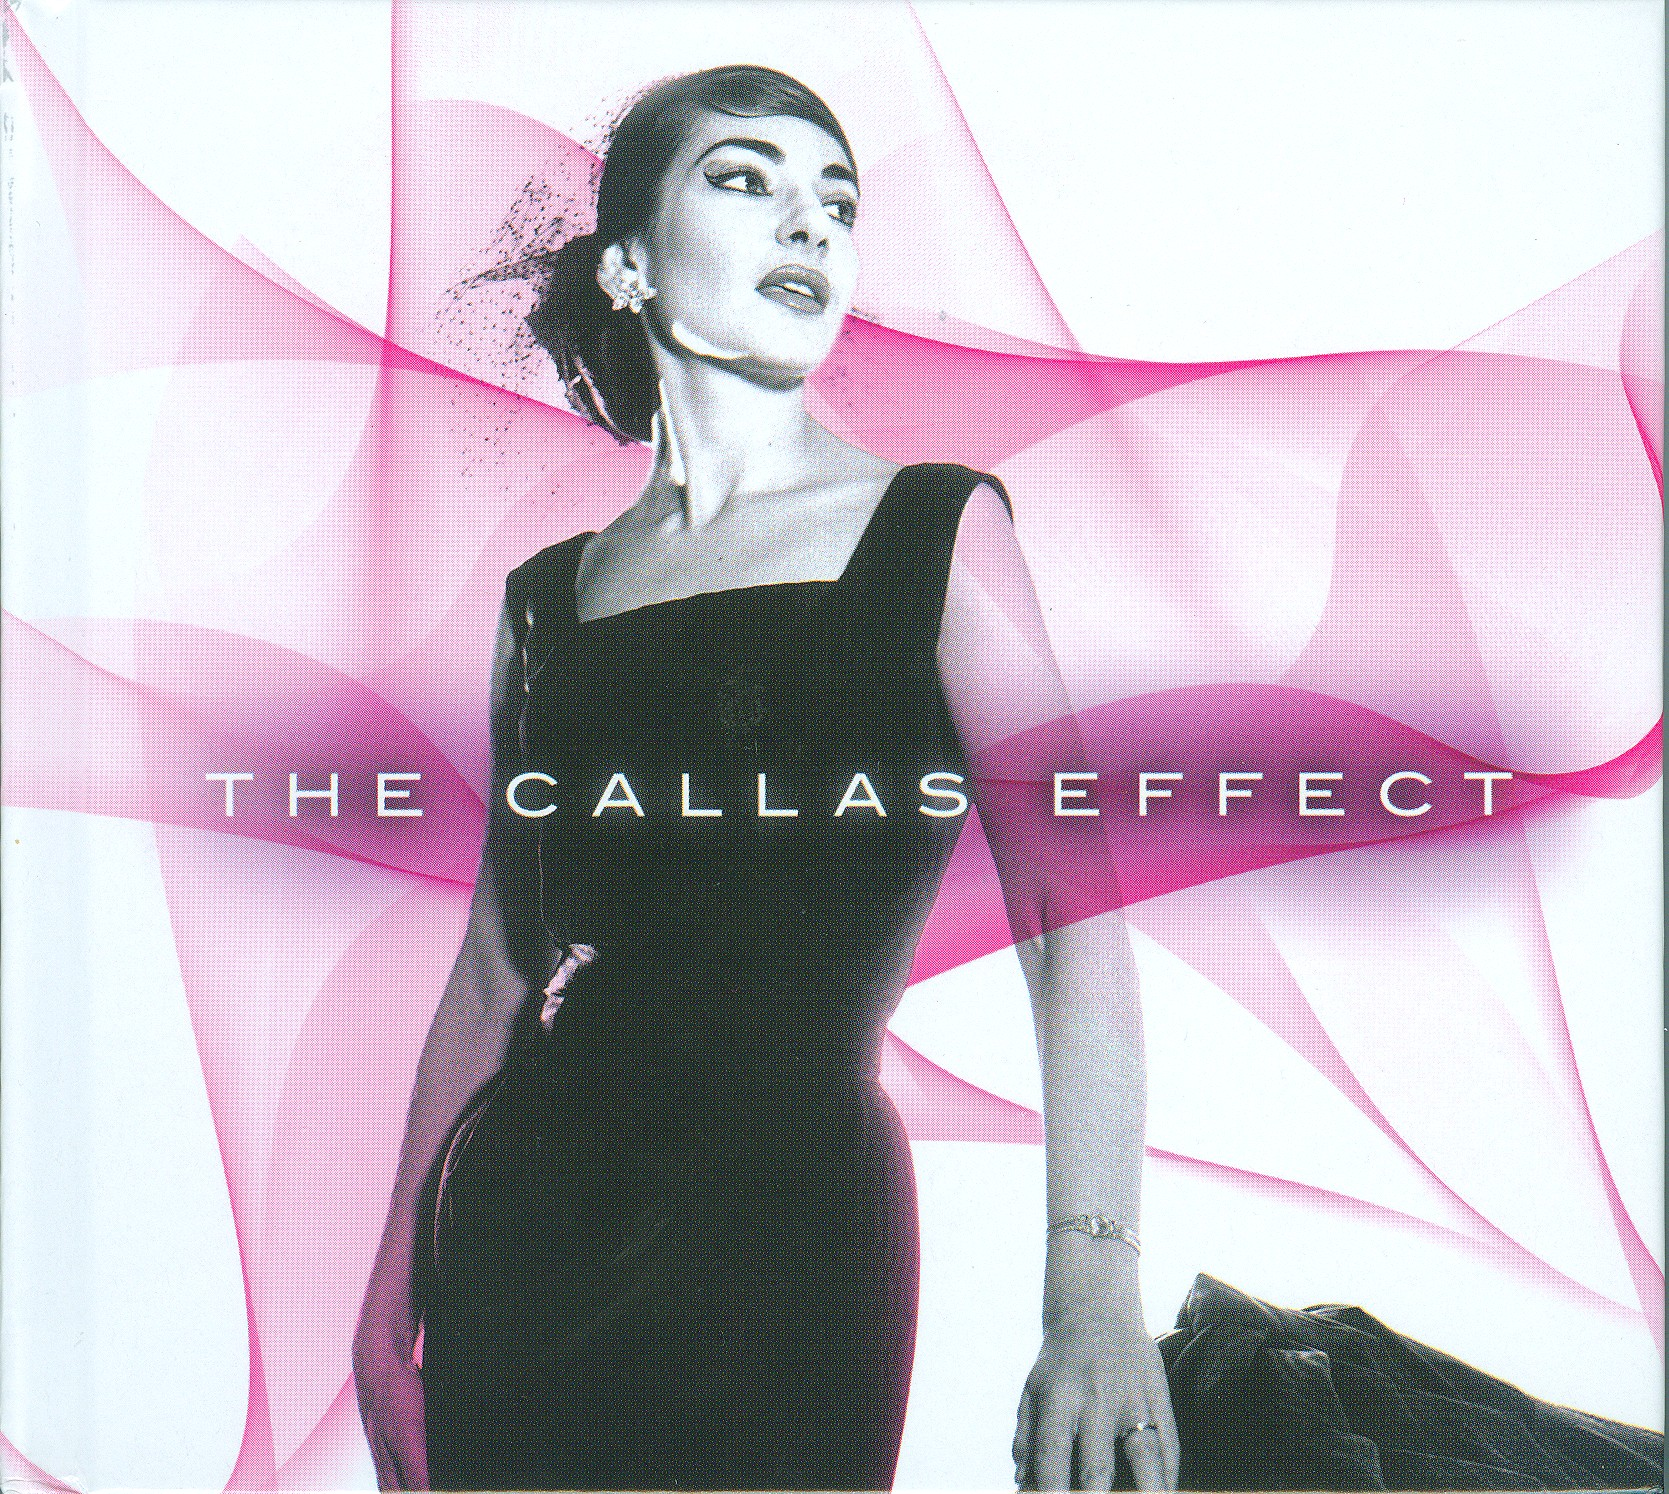 The Callas Effect